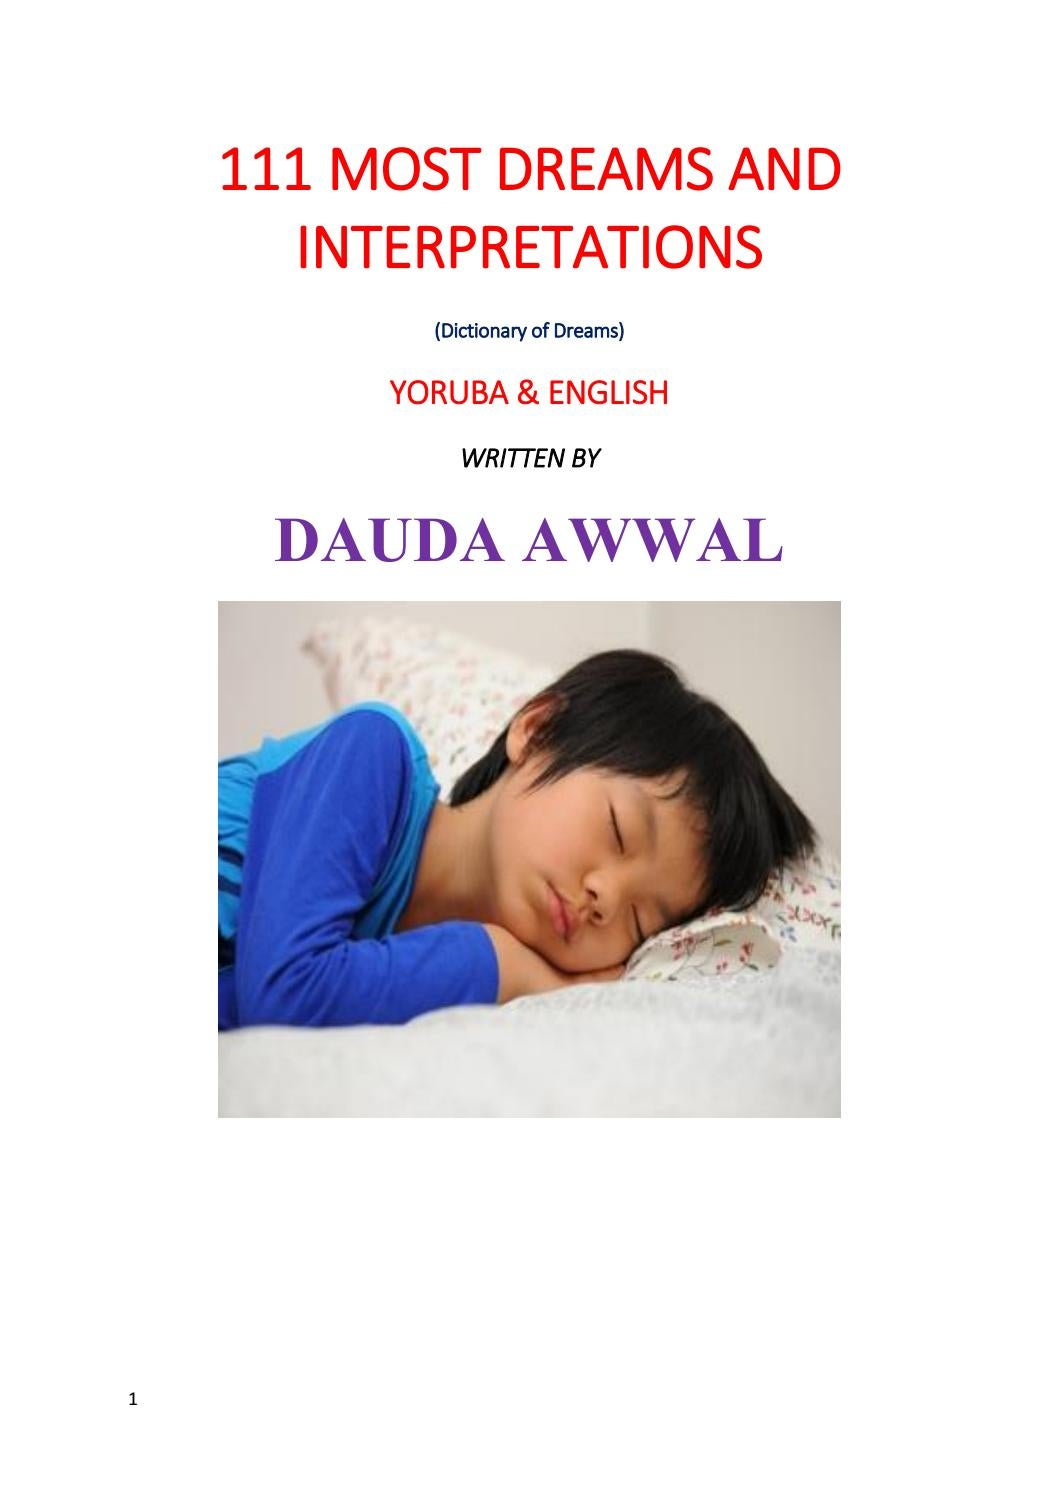 111 most dreams and intrepretations by dauda awwal by Awwal